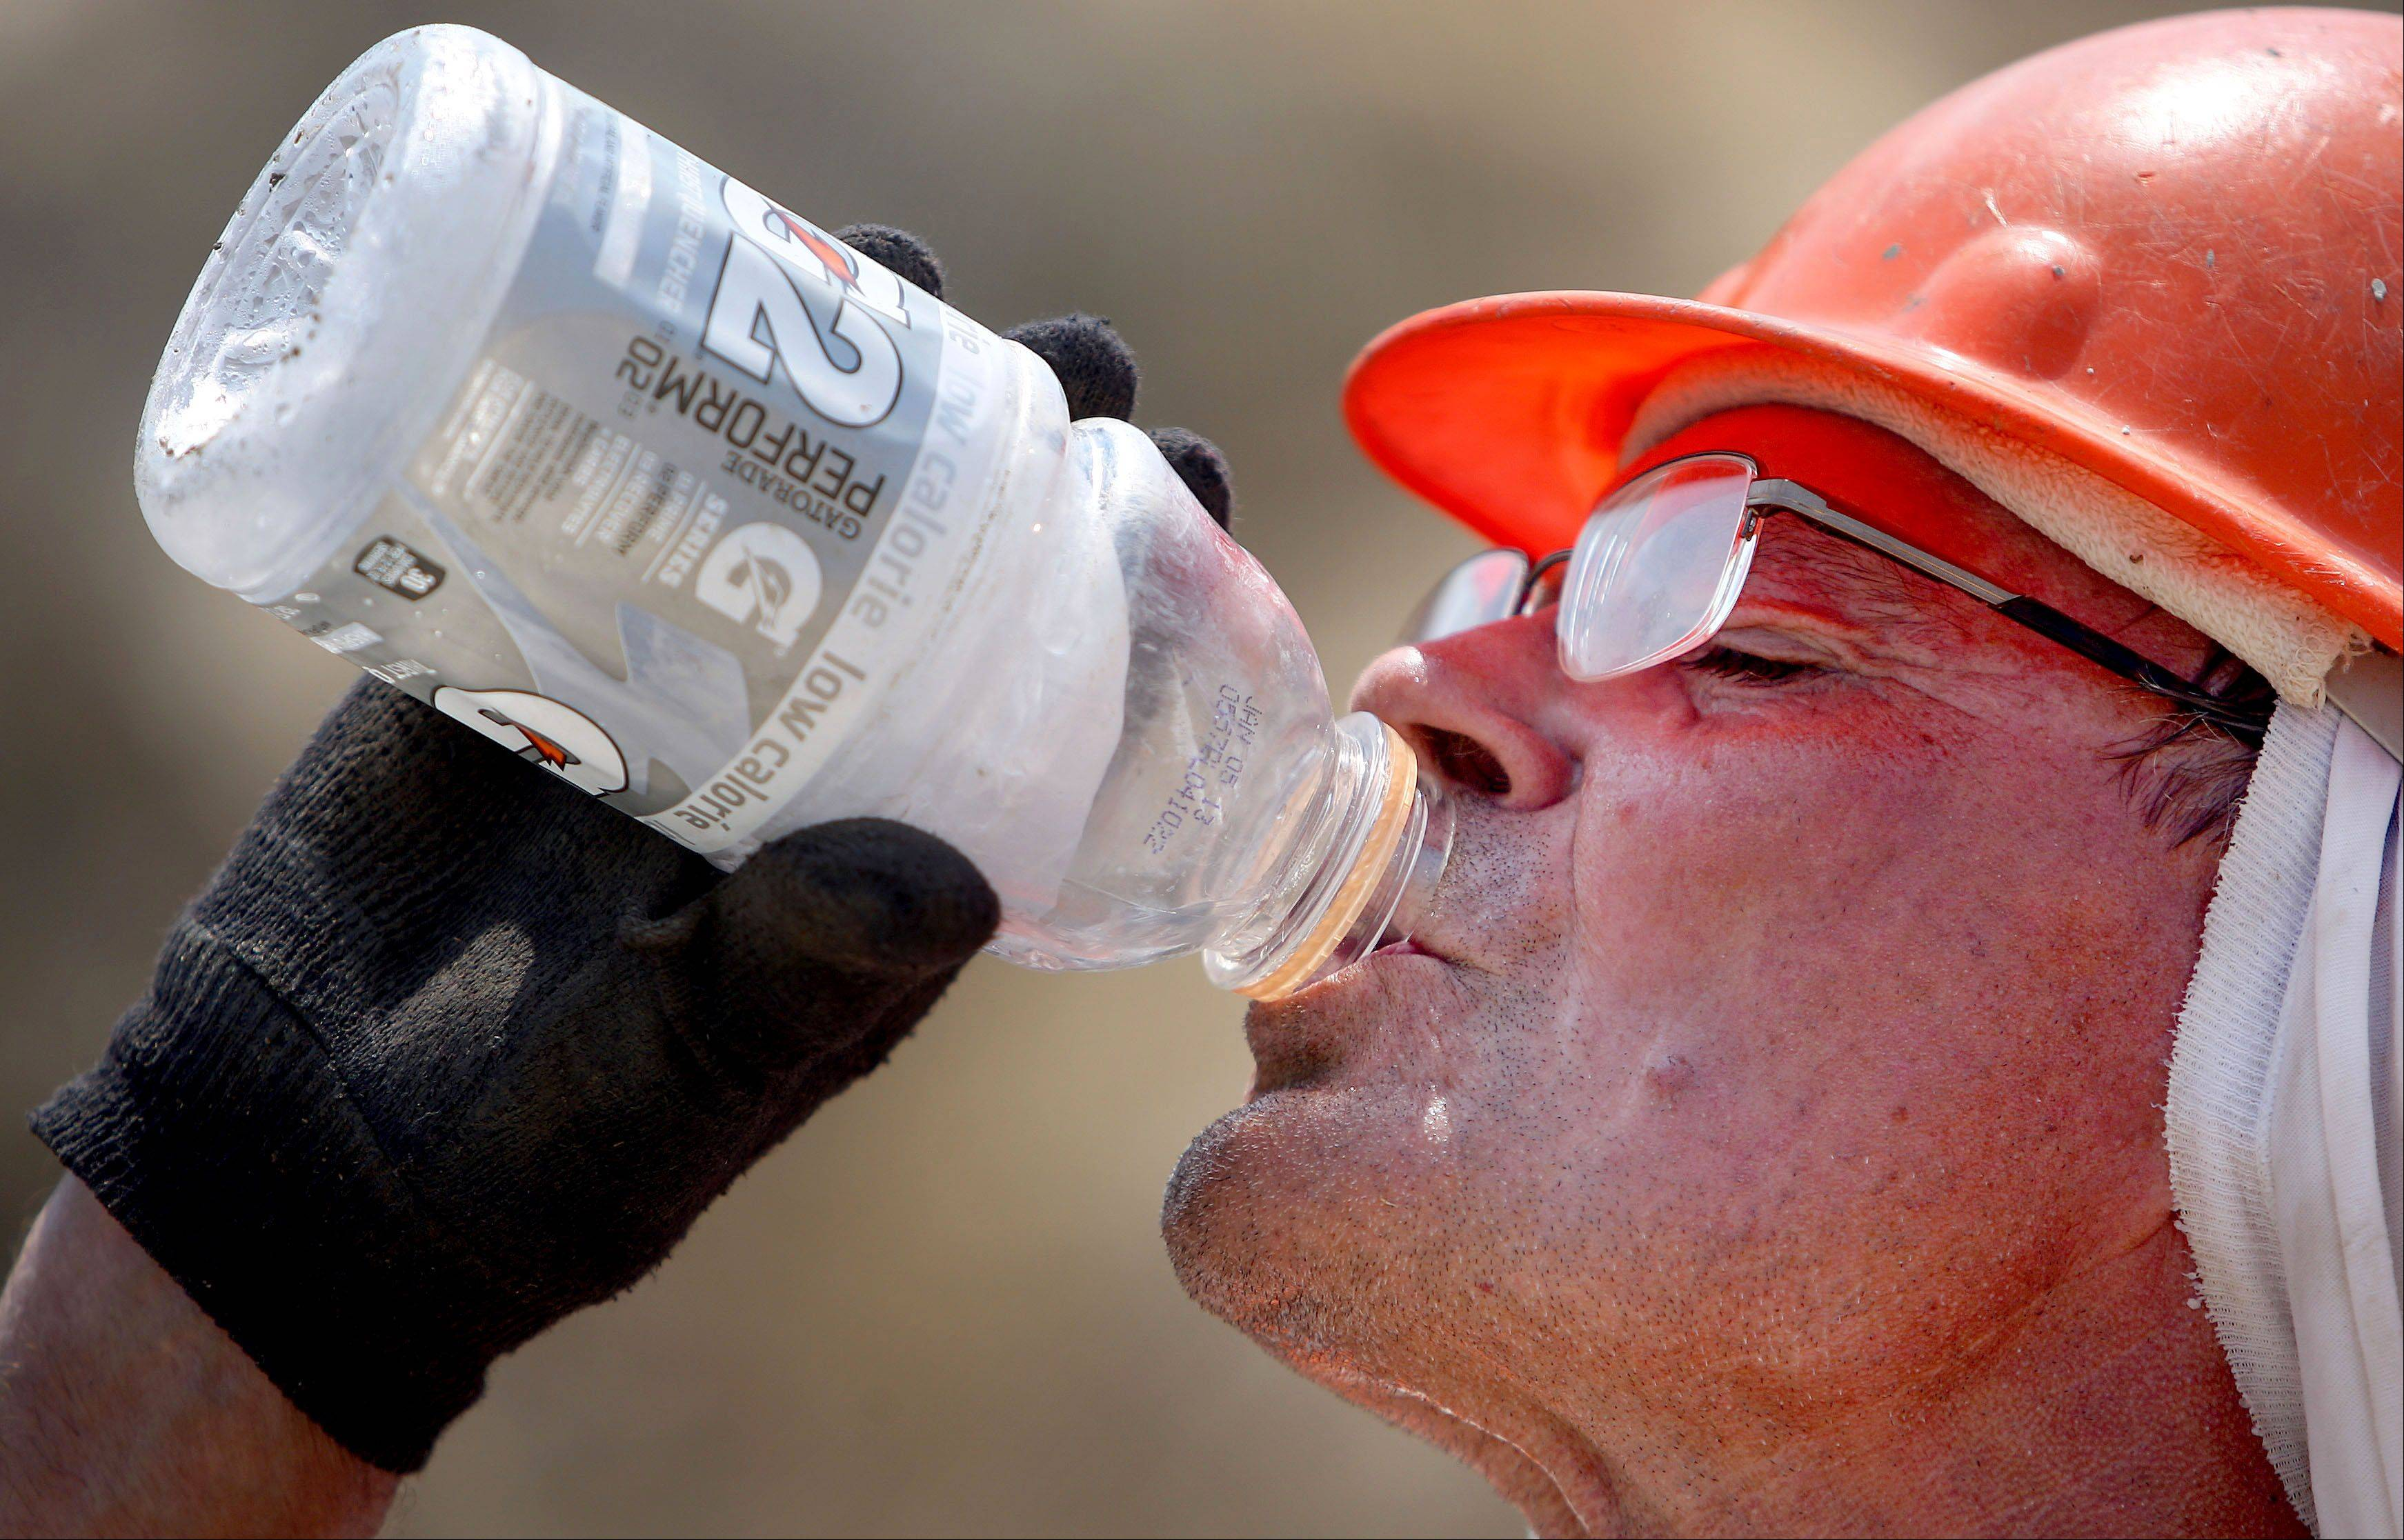 "Construction worker Bruce Burgett rehydrates after a long day in the heat while working on road construction on Route 176 near Wauconda. ""We started at 6 a.m. to beat the heat,"" said Burgett."